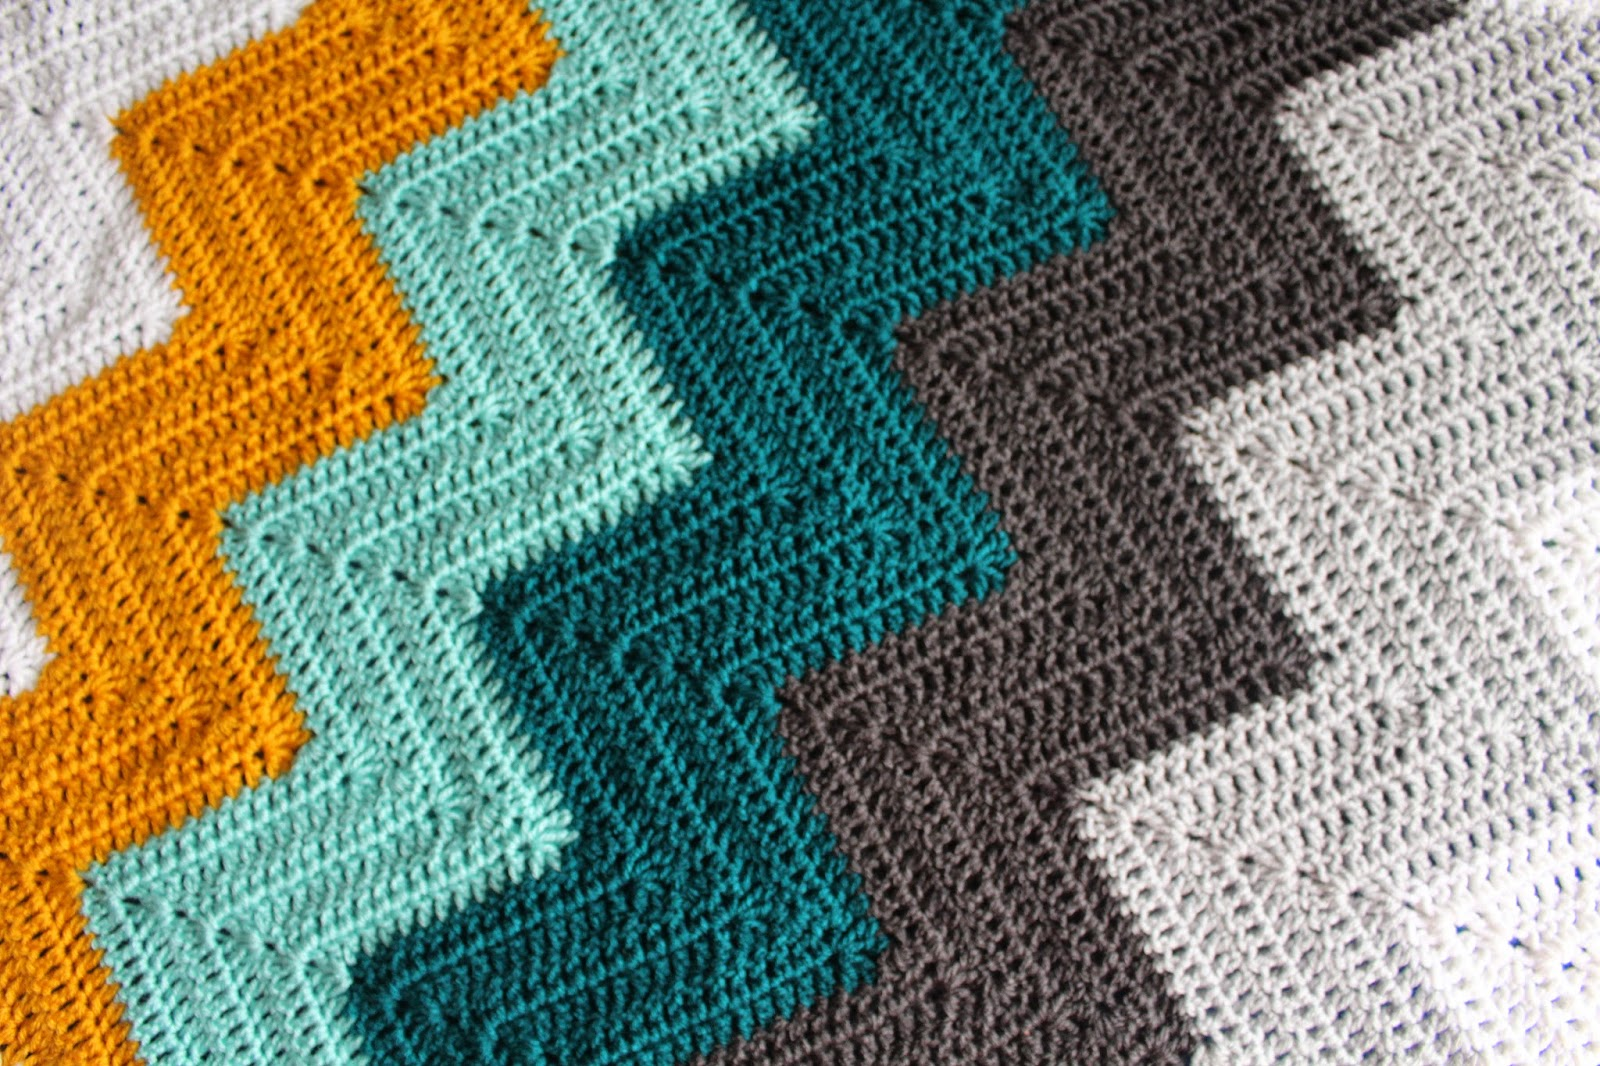 Lively Crochet Rhythmic Youth Teal Dreams Chevron